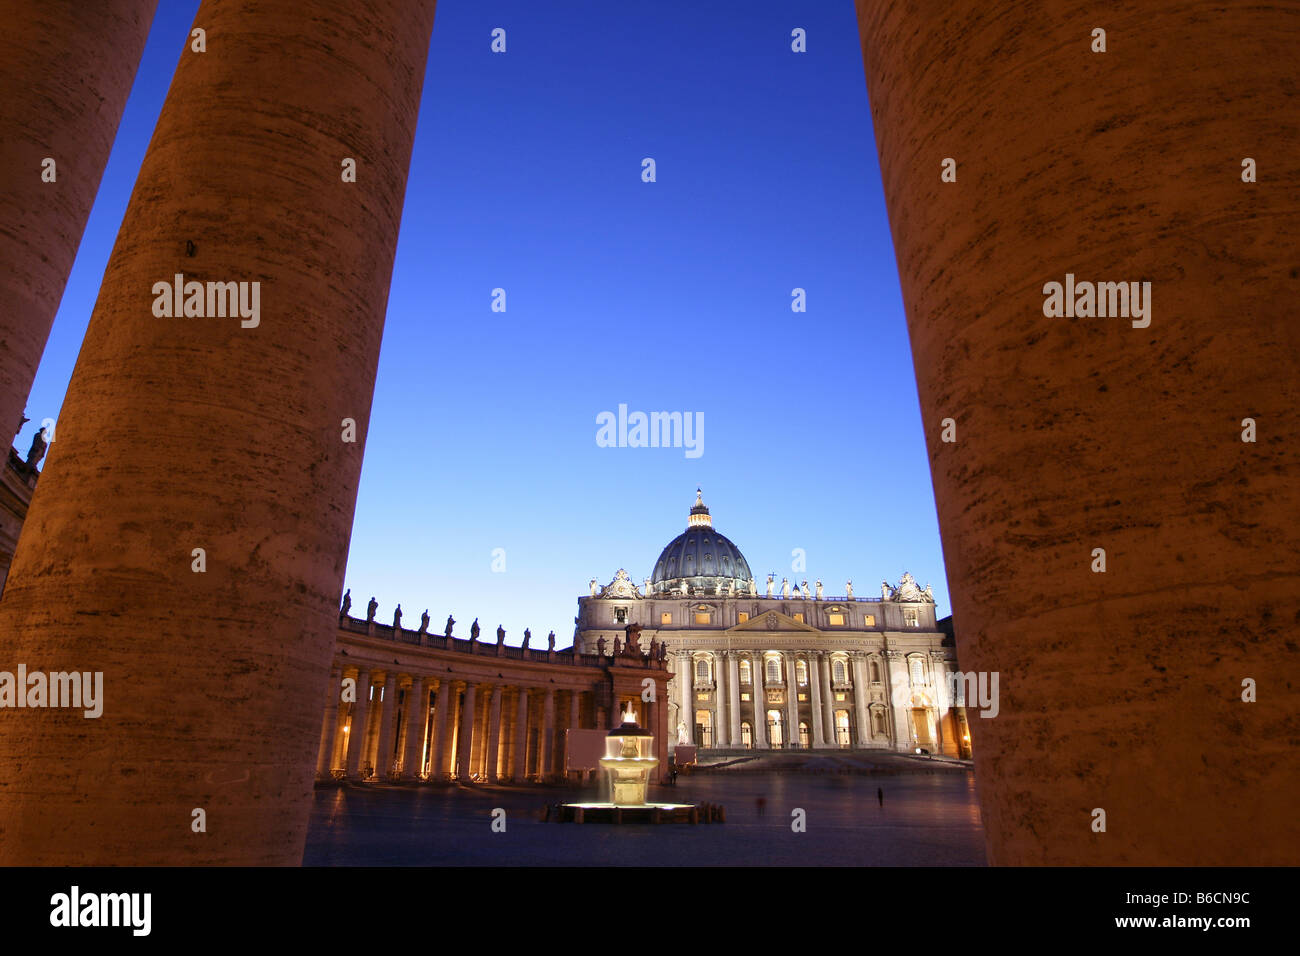 Cathedral viewed through columns at dusk, Rome, Italy - Stock Image